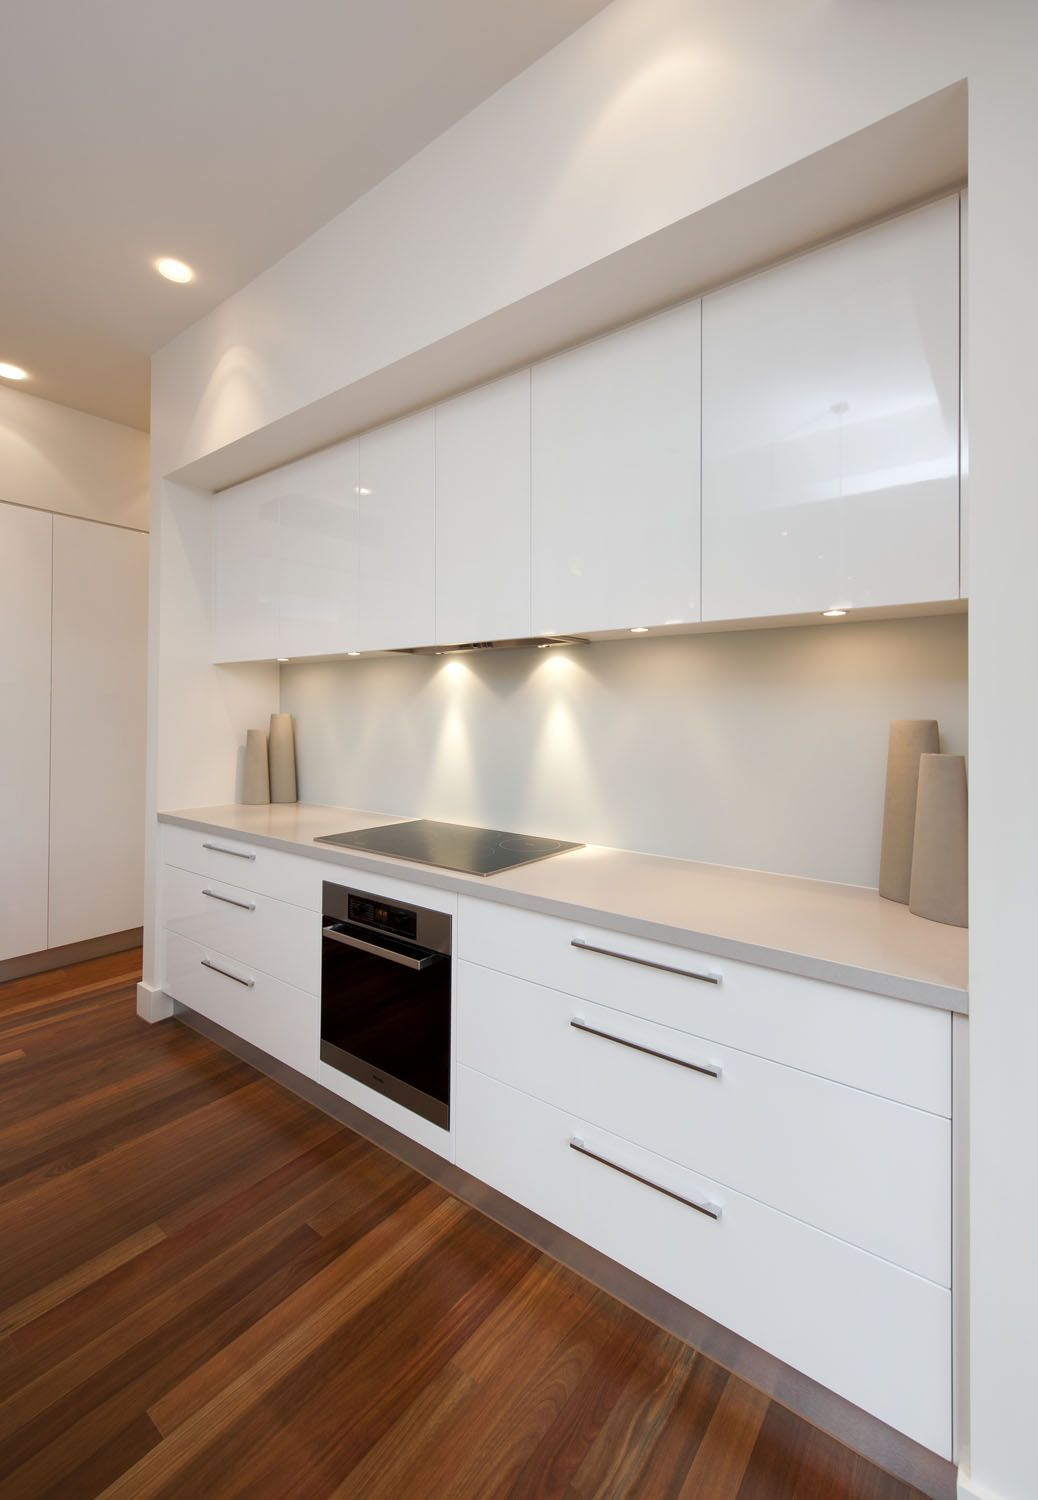 Caesarstone Haze Bulk Head To Come Out Over Cupboards Recessed In Look White Modern Kitchen White Contemporary Kitchen Contemporary Kitchen Cabinets